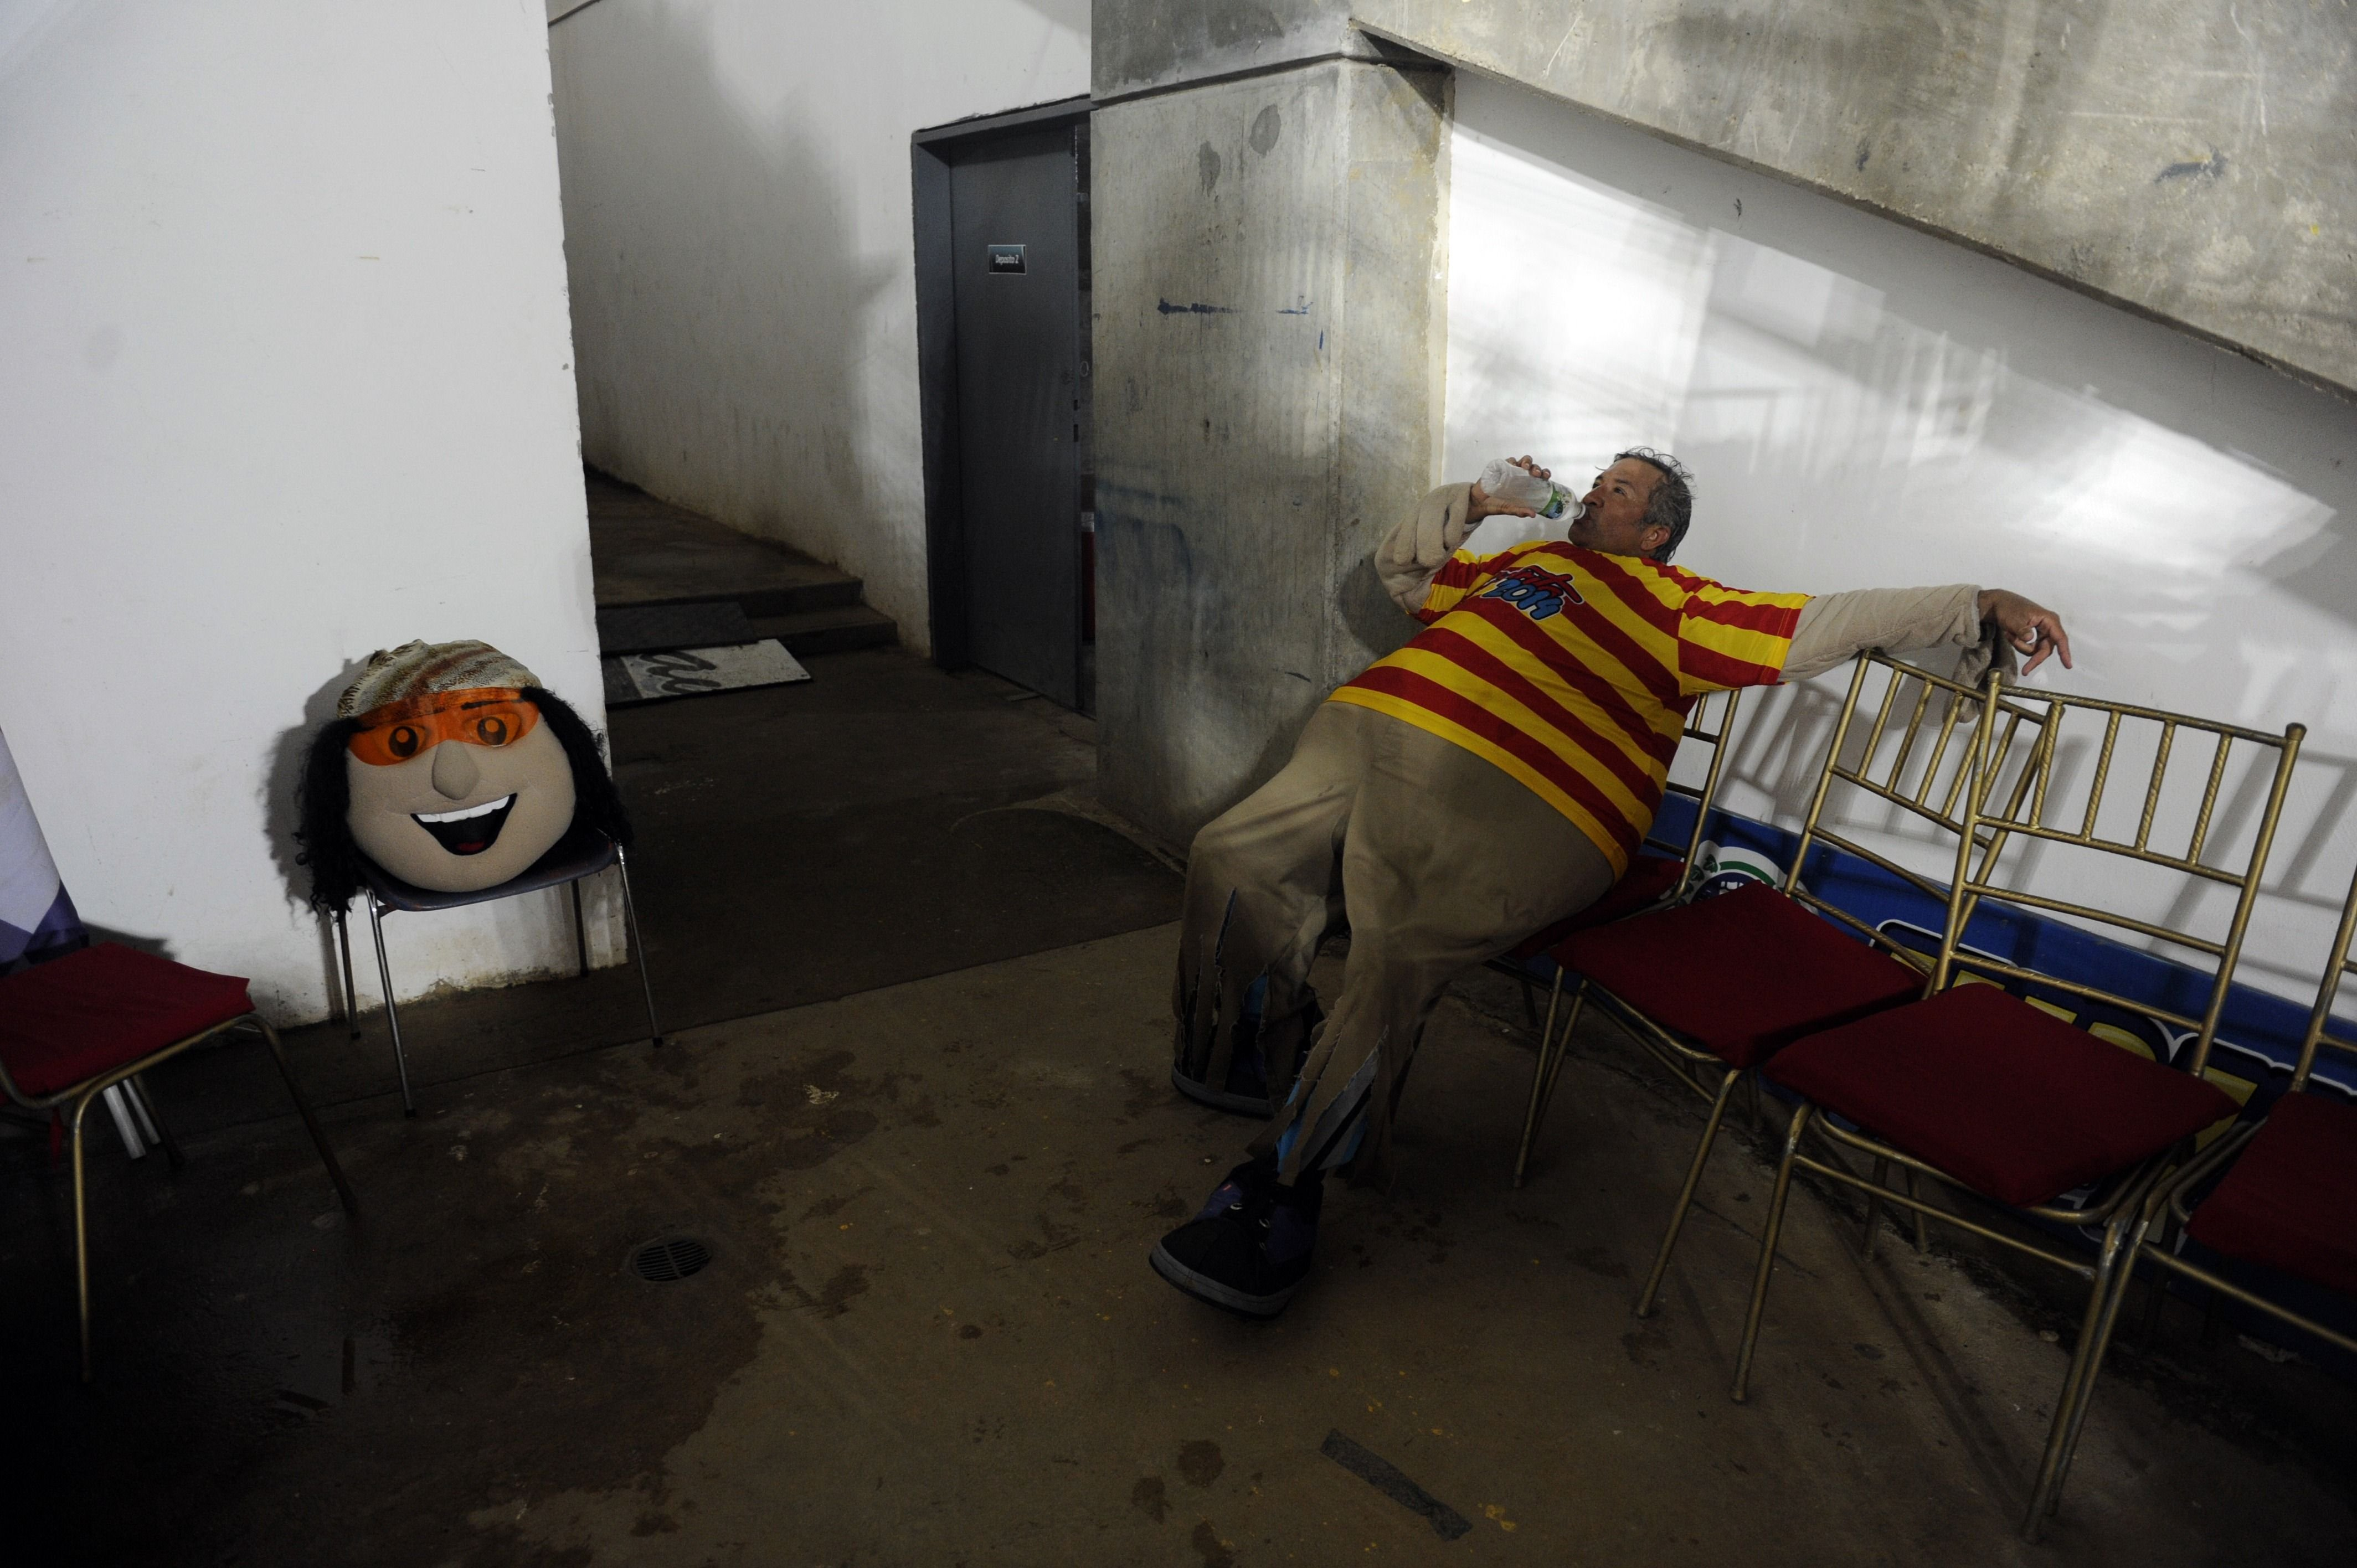 The man that works as the mascot  Margarito  for the 2014 Caribbean baseball series rests backstage during the game between Dominican Republic's Tigres de Licey  and Venezuela's Navegantes del Magallanes, on Feb. 4, 2014, in Porlamar City, Margarita Island, Nueva Esparta state, Venezuela.